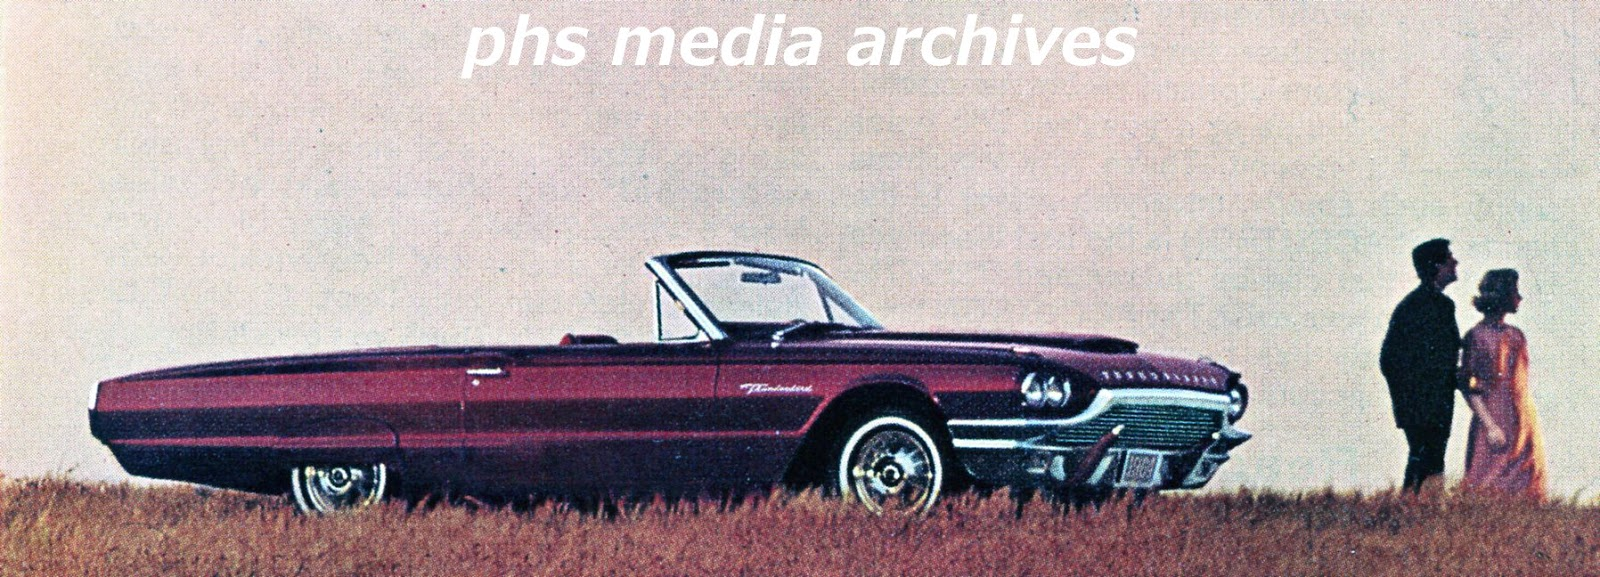 Phscollectorcarworld March 2017 Wiring Diagram For 1963 Ford Thunderbird Convertible Top The Restyle 1964 Was A Wise Move As Sales Went Up